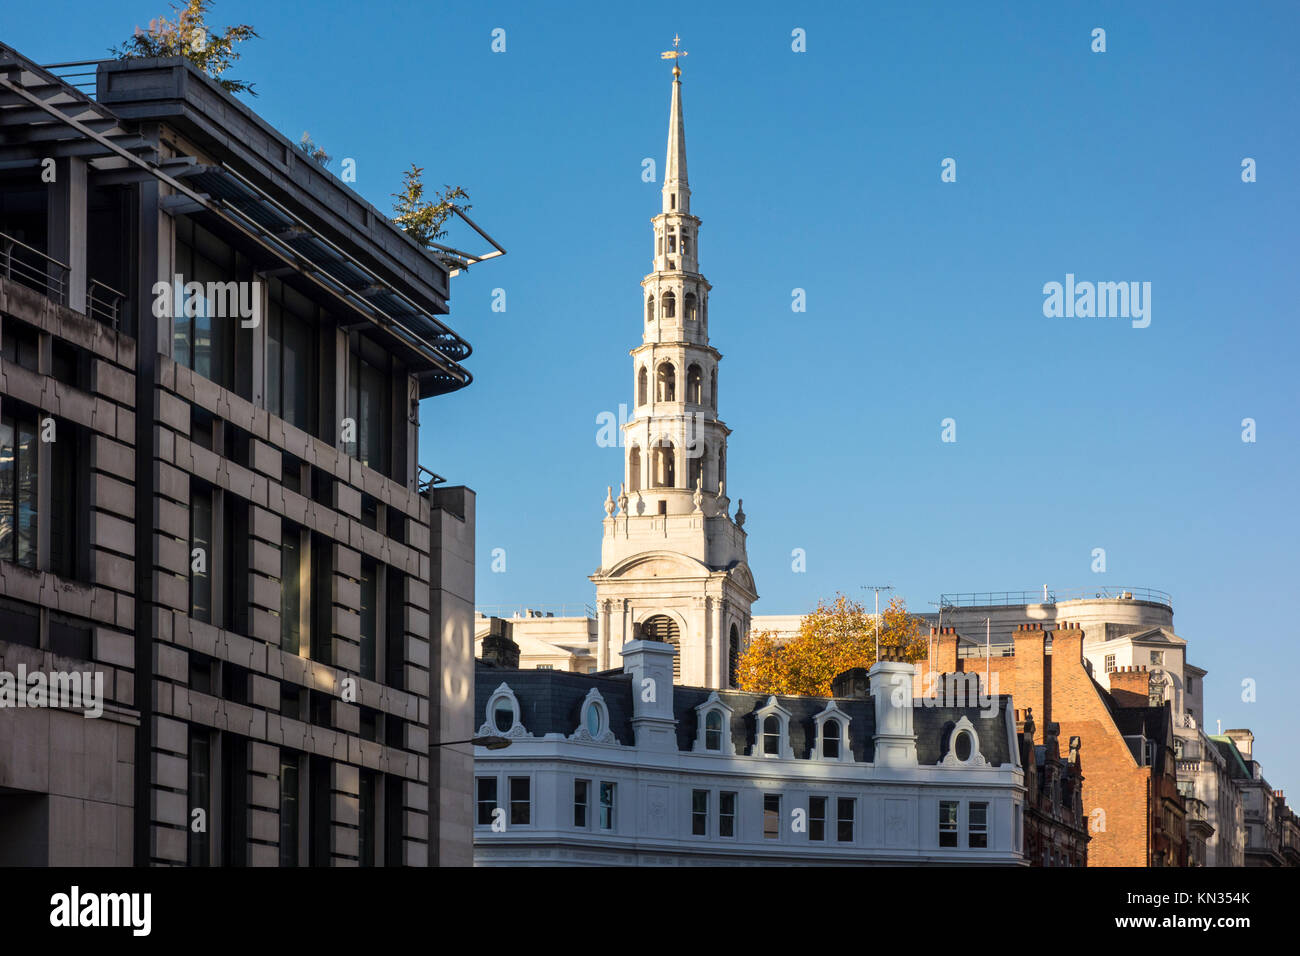 Spire of St Bride's Church, Fleet Street, viewed above the rooftops of buildings on Ludgate Circus. City of - Stock Image